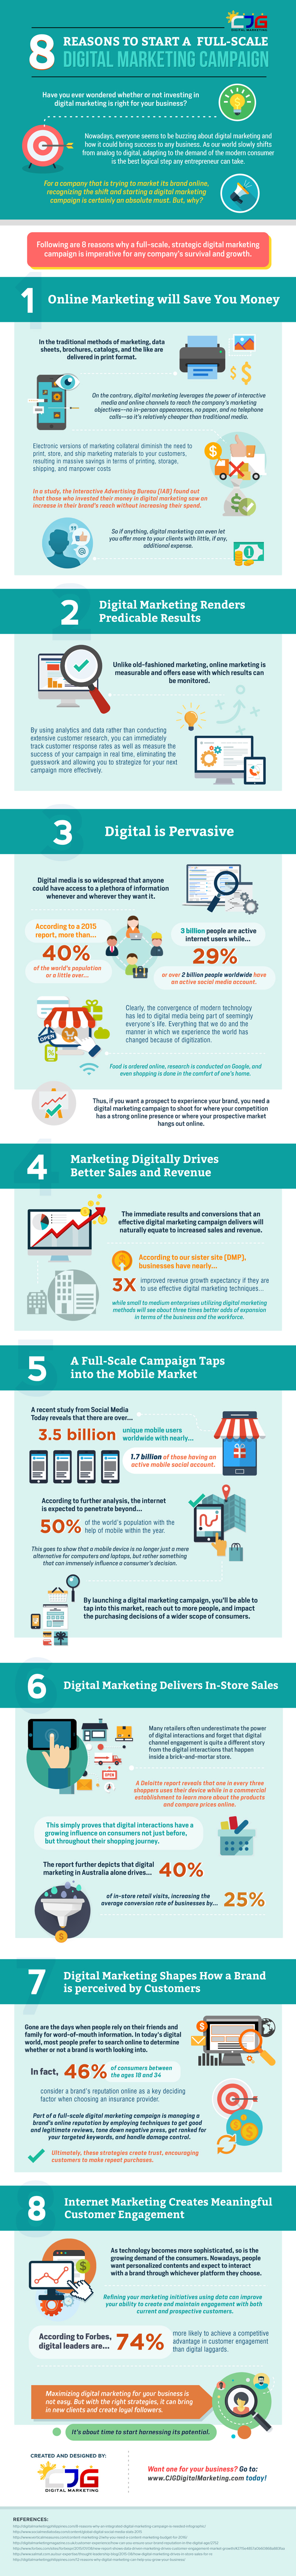 8 Reasons To Start A Full-Scale Digital Marketing Campaign [Infographic]